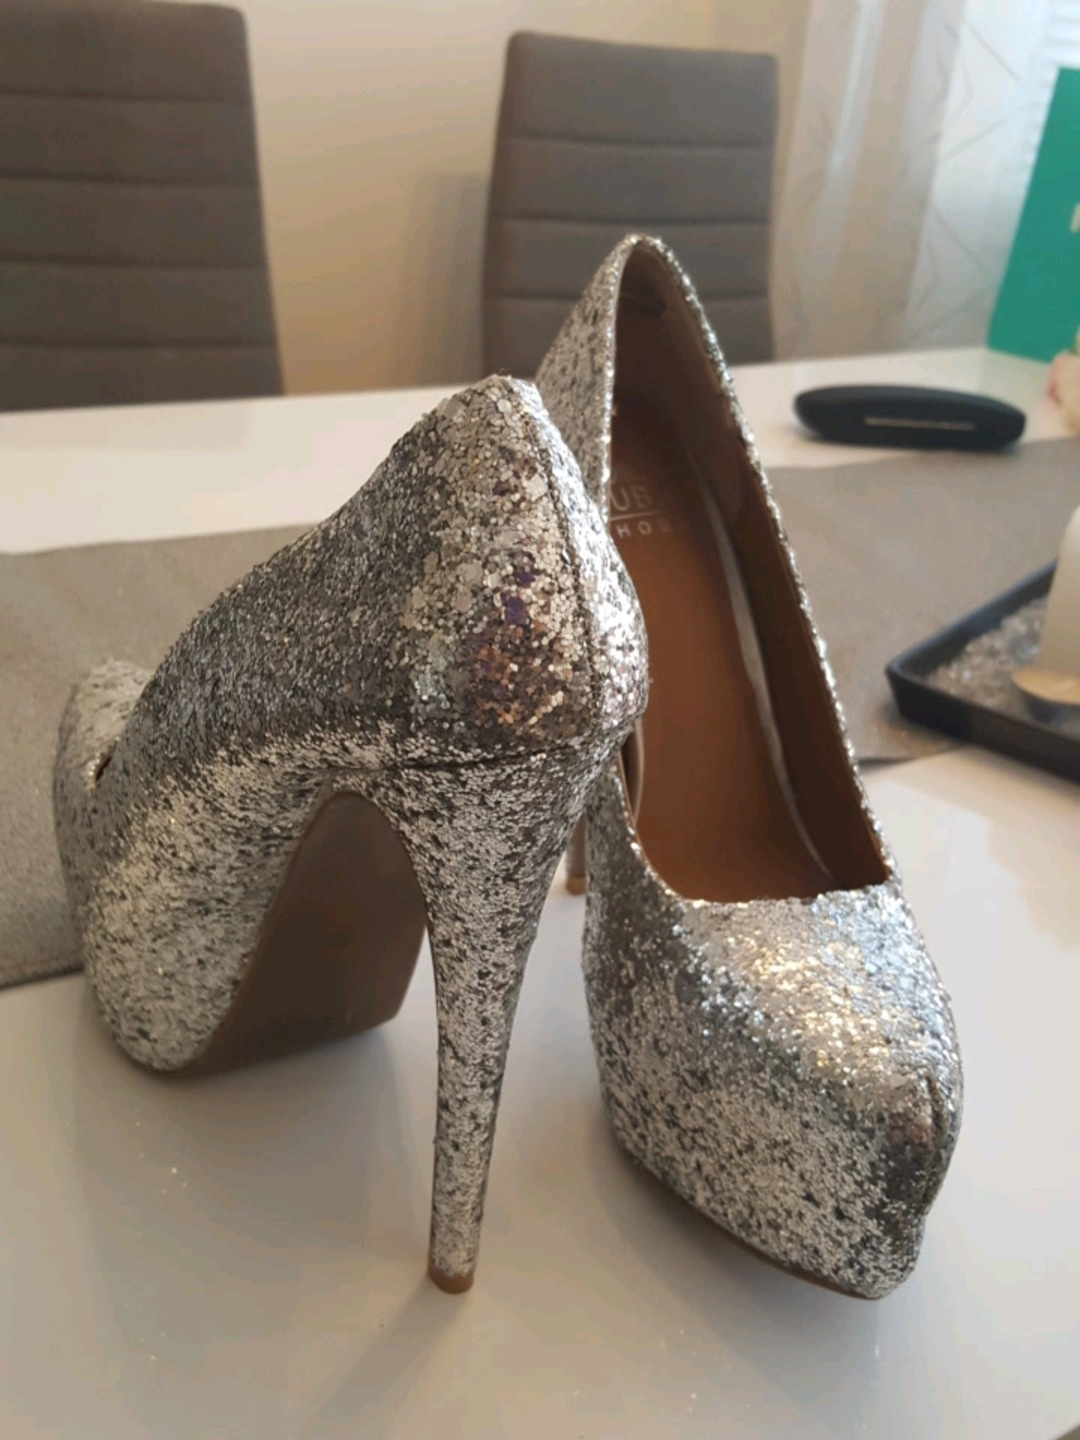 Women's heels & dress shoes - NLY photo 4